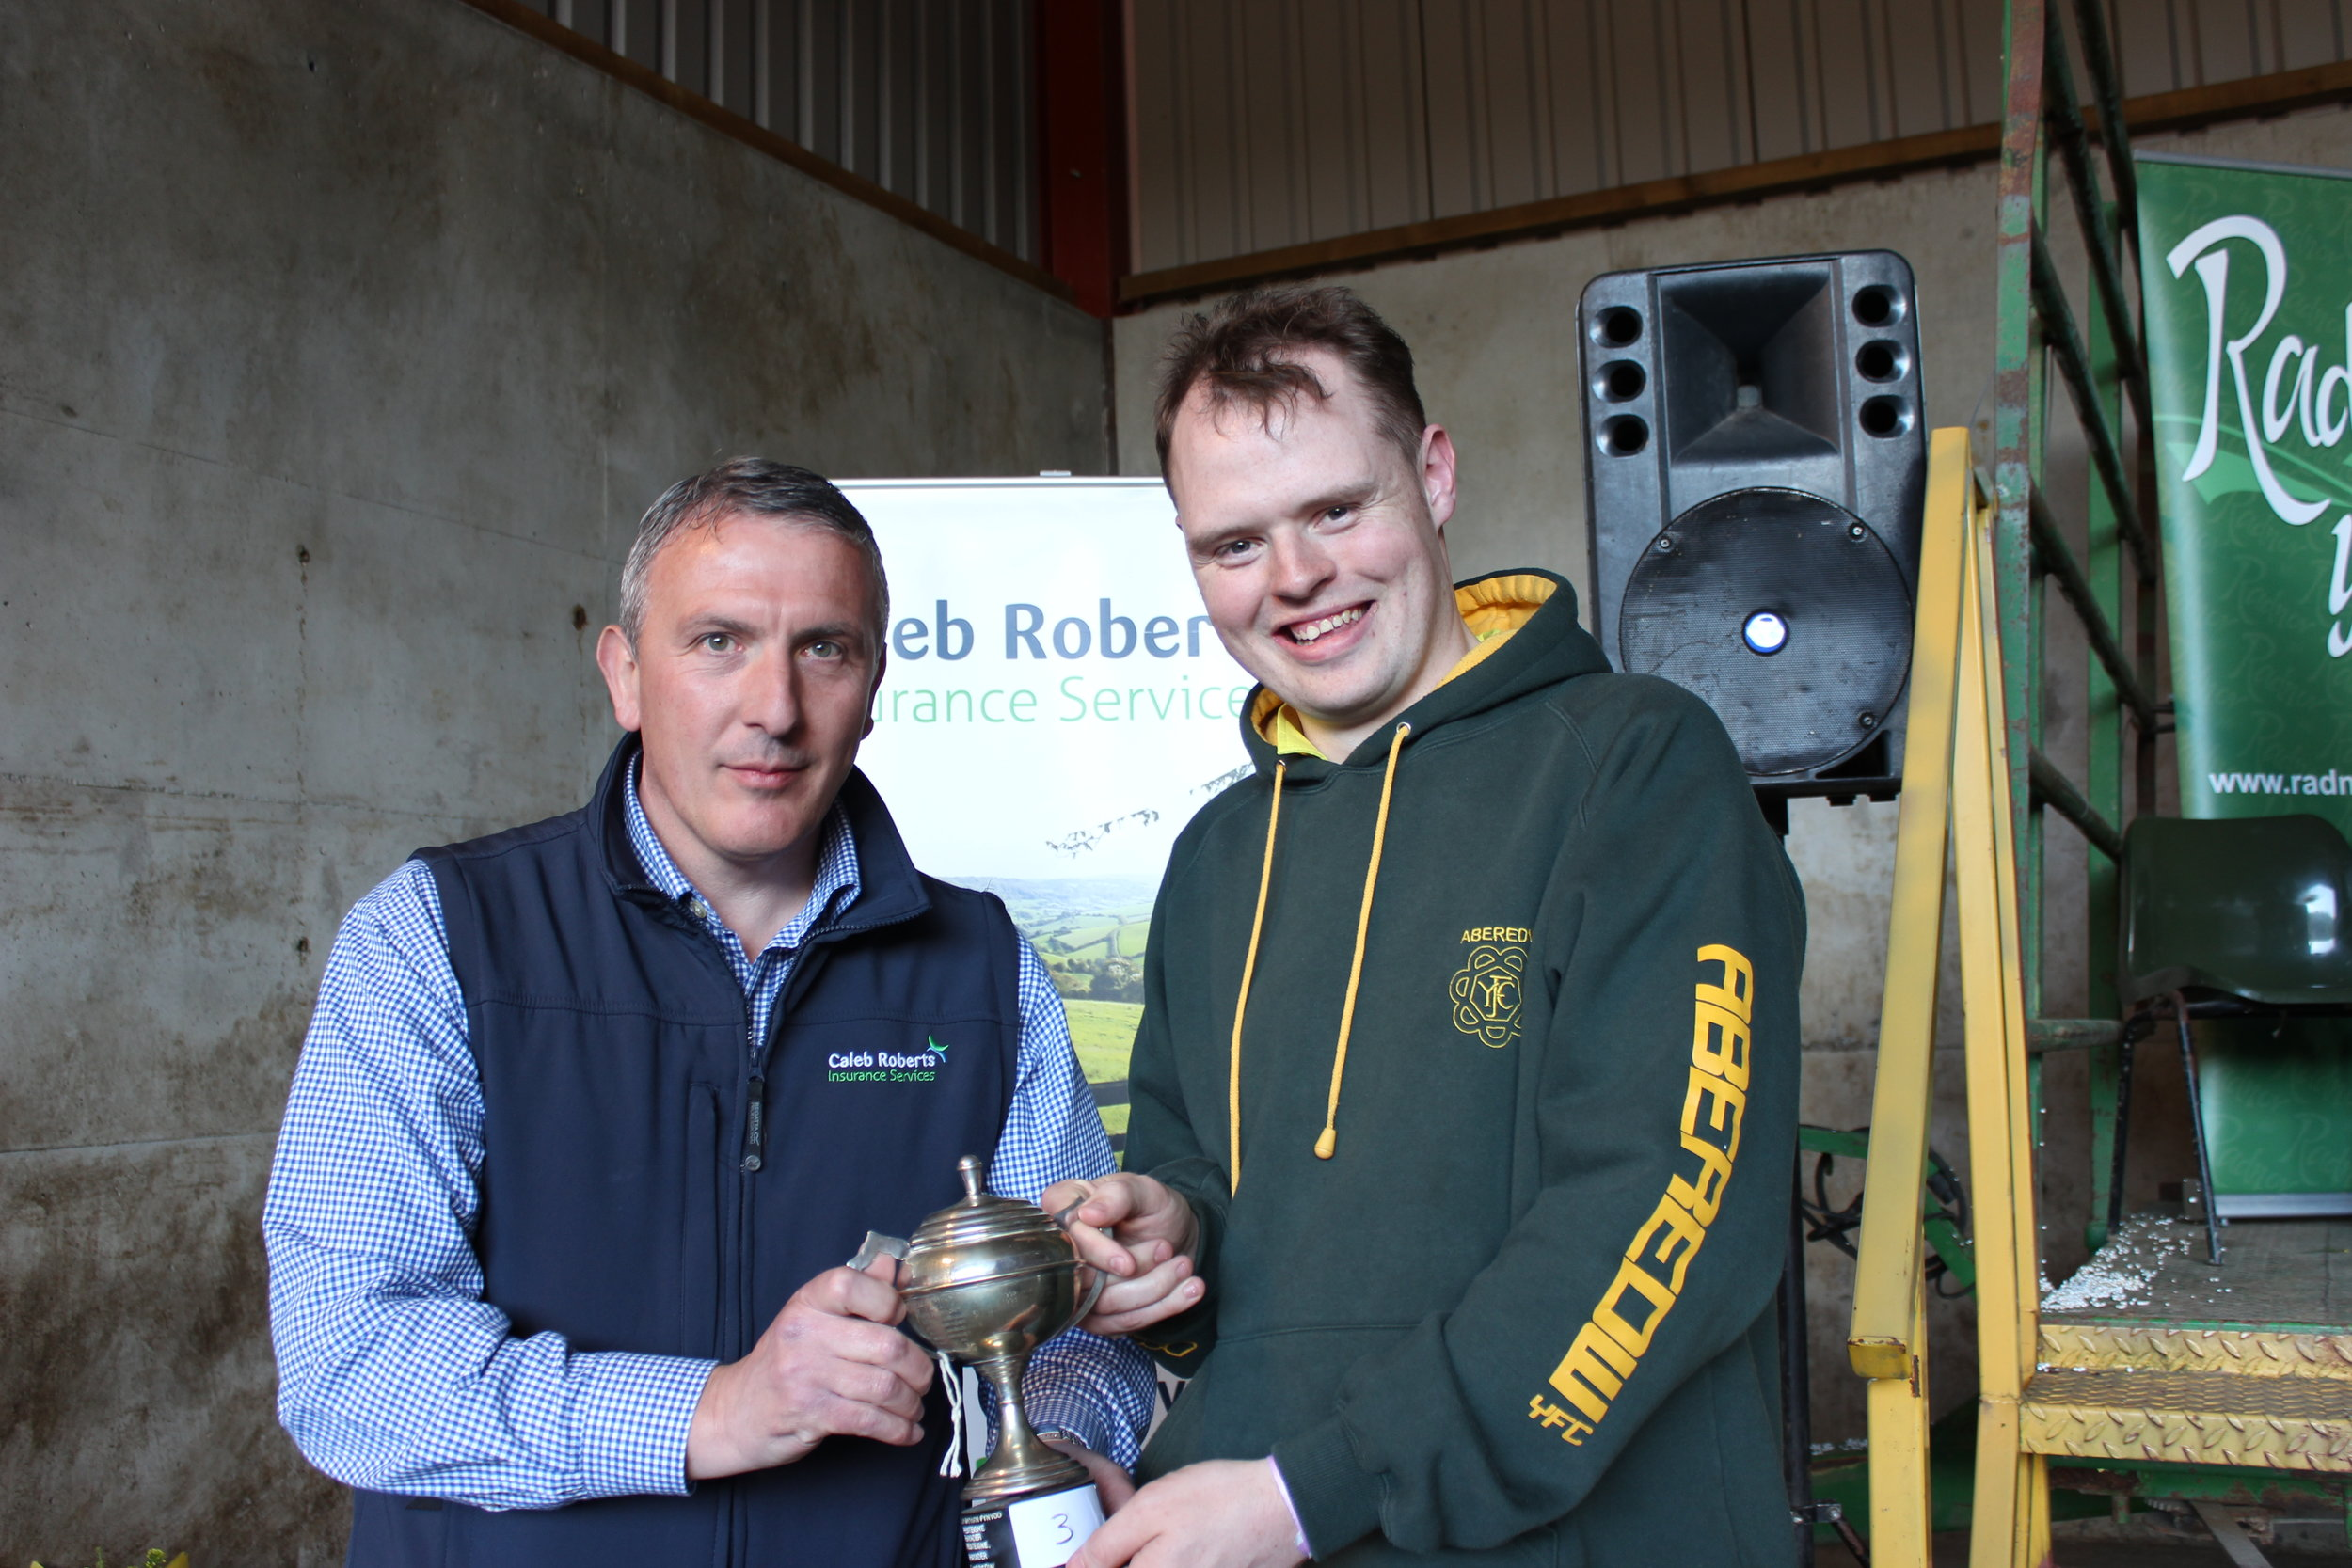 Owen Eckley, Aberedw YFC - Bevan Lewis Cup for third place being presented by Hugh Campbell, Caleb Roberts.